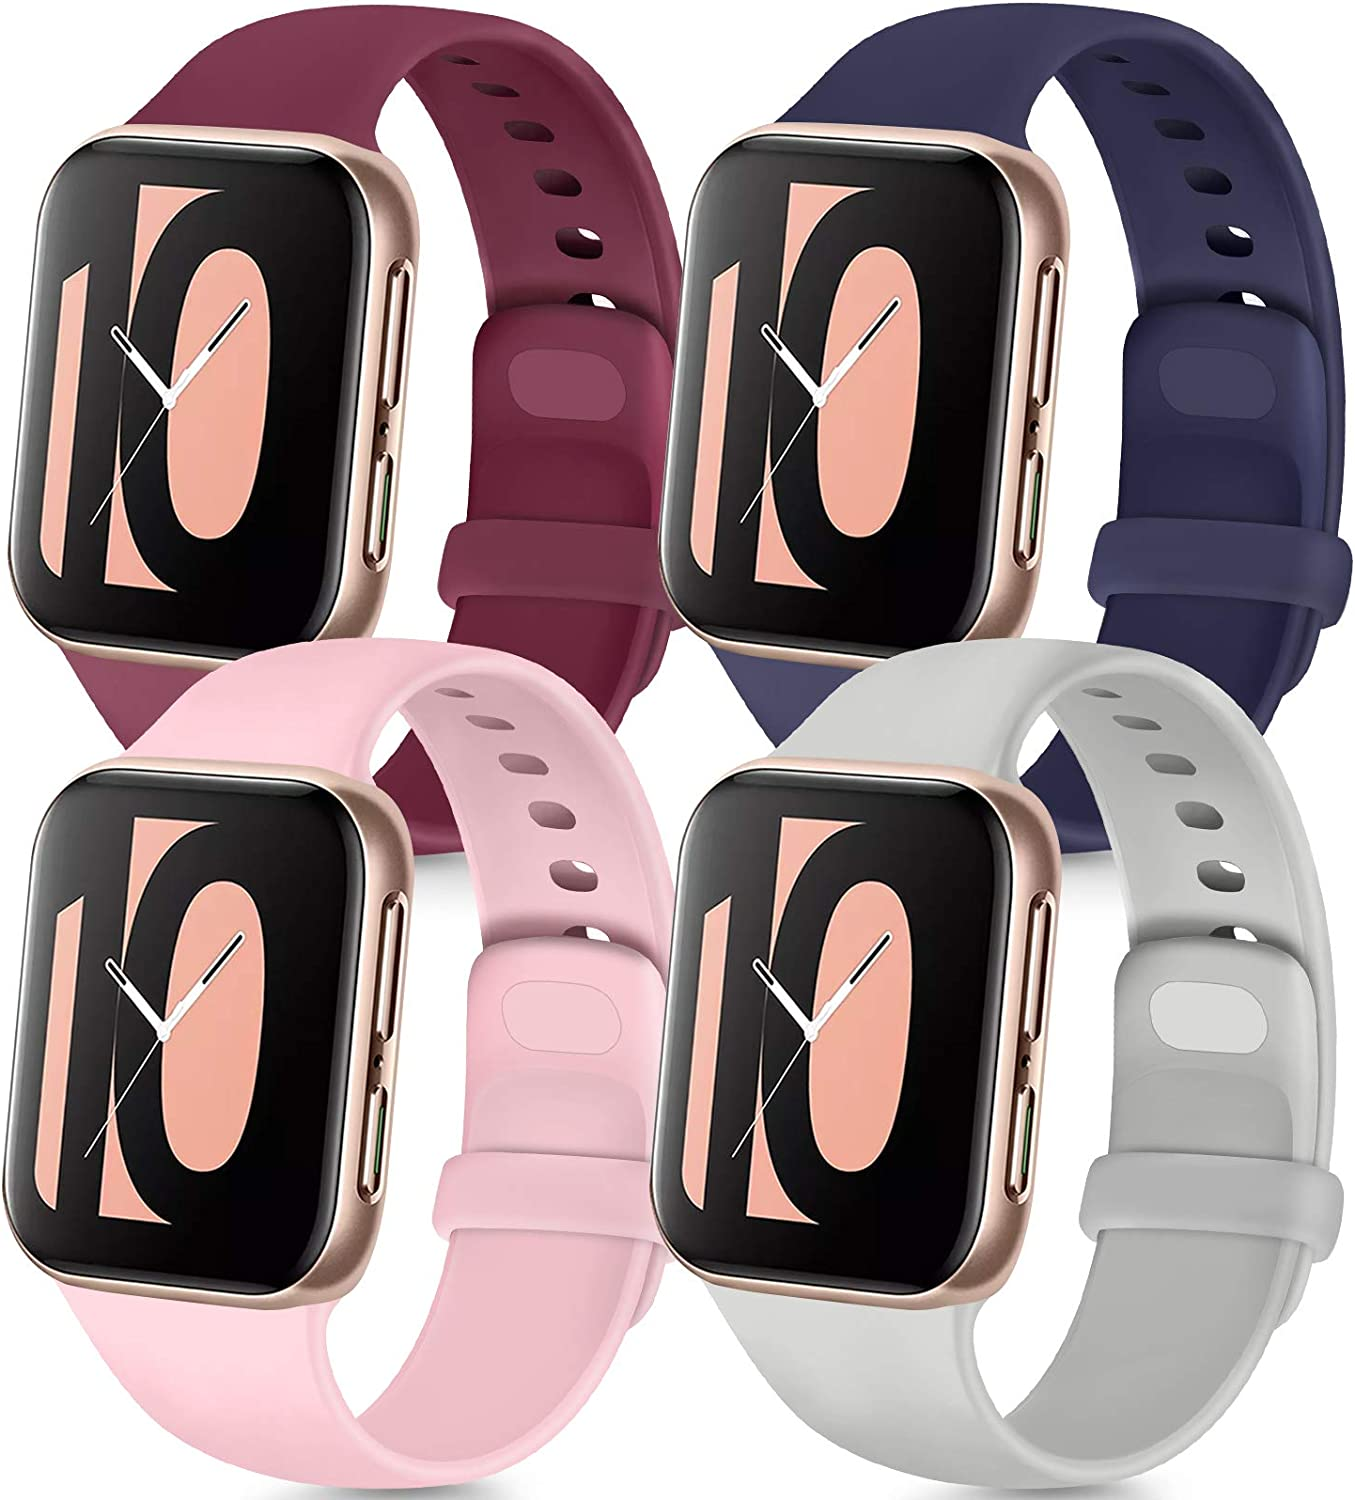 Tobfit 4 Pack Compatible with Apple Watch Band 38mm 42mm 40mm 44mm, Soft Silicone Replacement Band Compatible with iWatch Series 6 5 4 3 SE (Gray/Wine Red/Pink/Navy Blue, 42mm/44mm S/M)